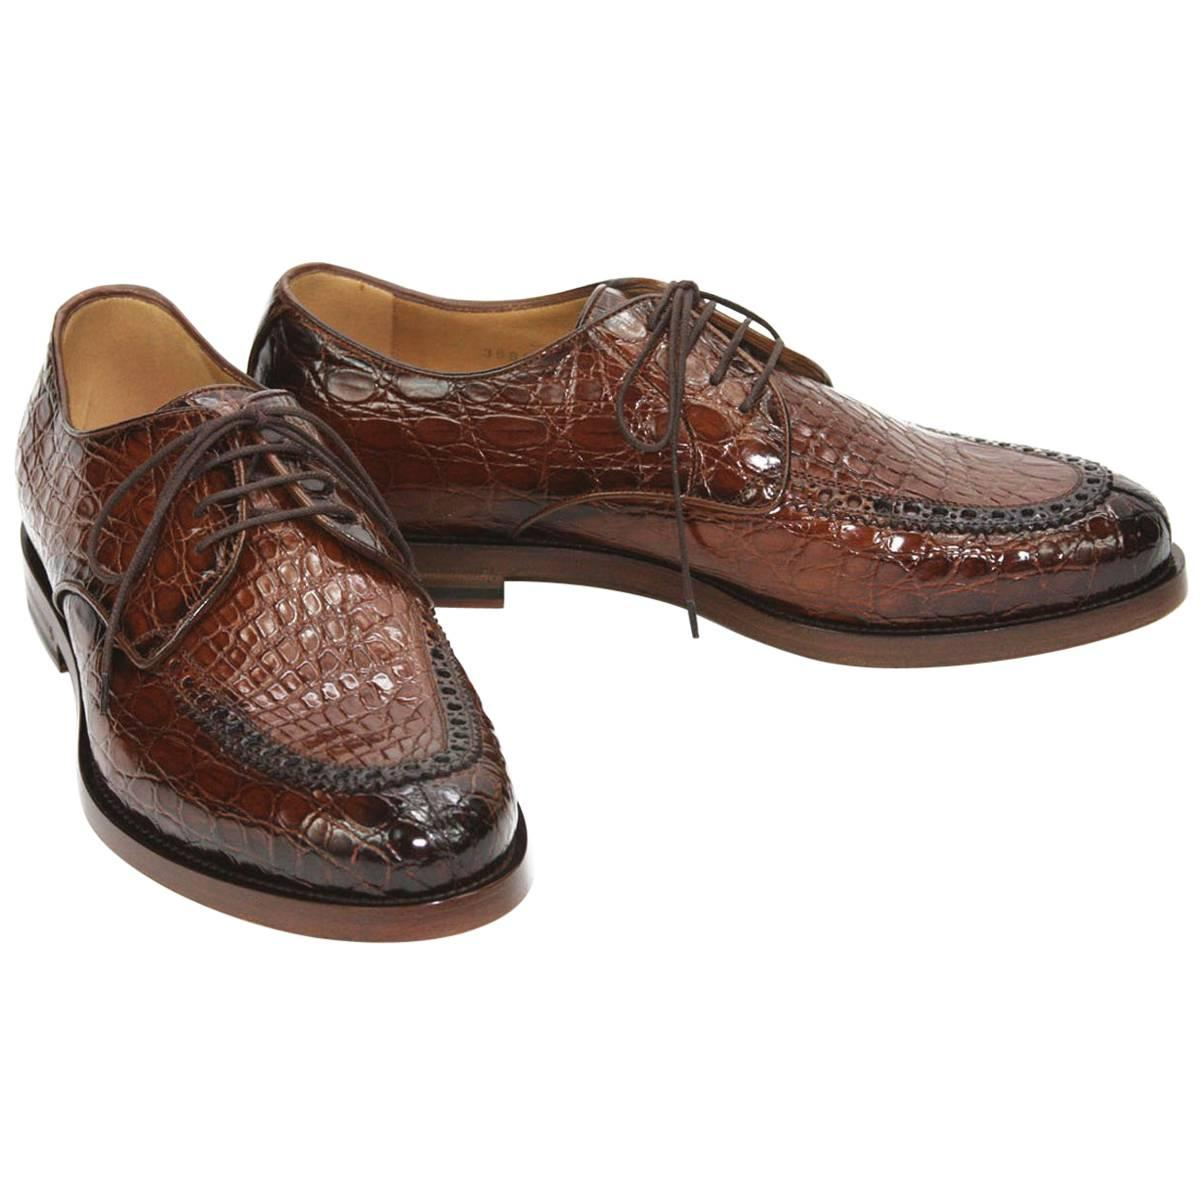 bcc27263f9a6ab New $4000 Gucci Millennium Mens Shaded Crocodile Oxford Brown Shoes US 7.5  It 41 For Sale at 1stdibs